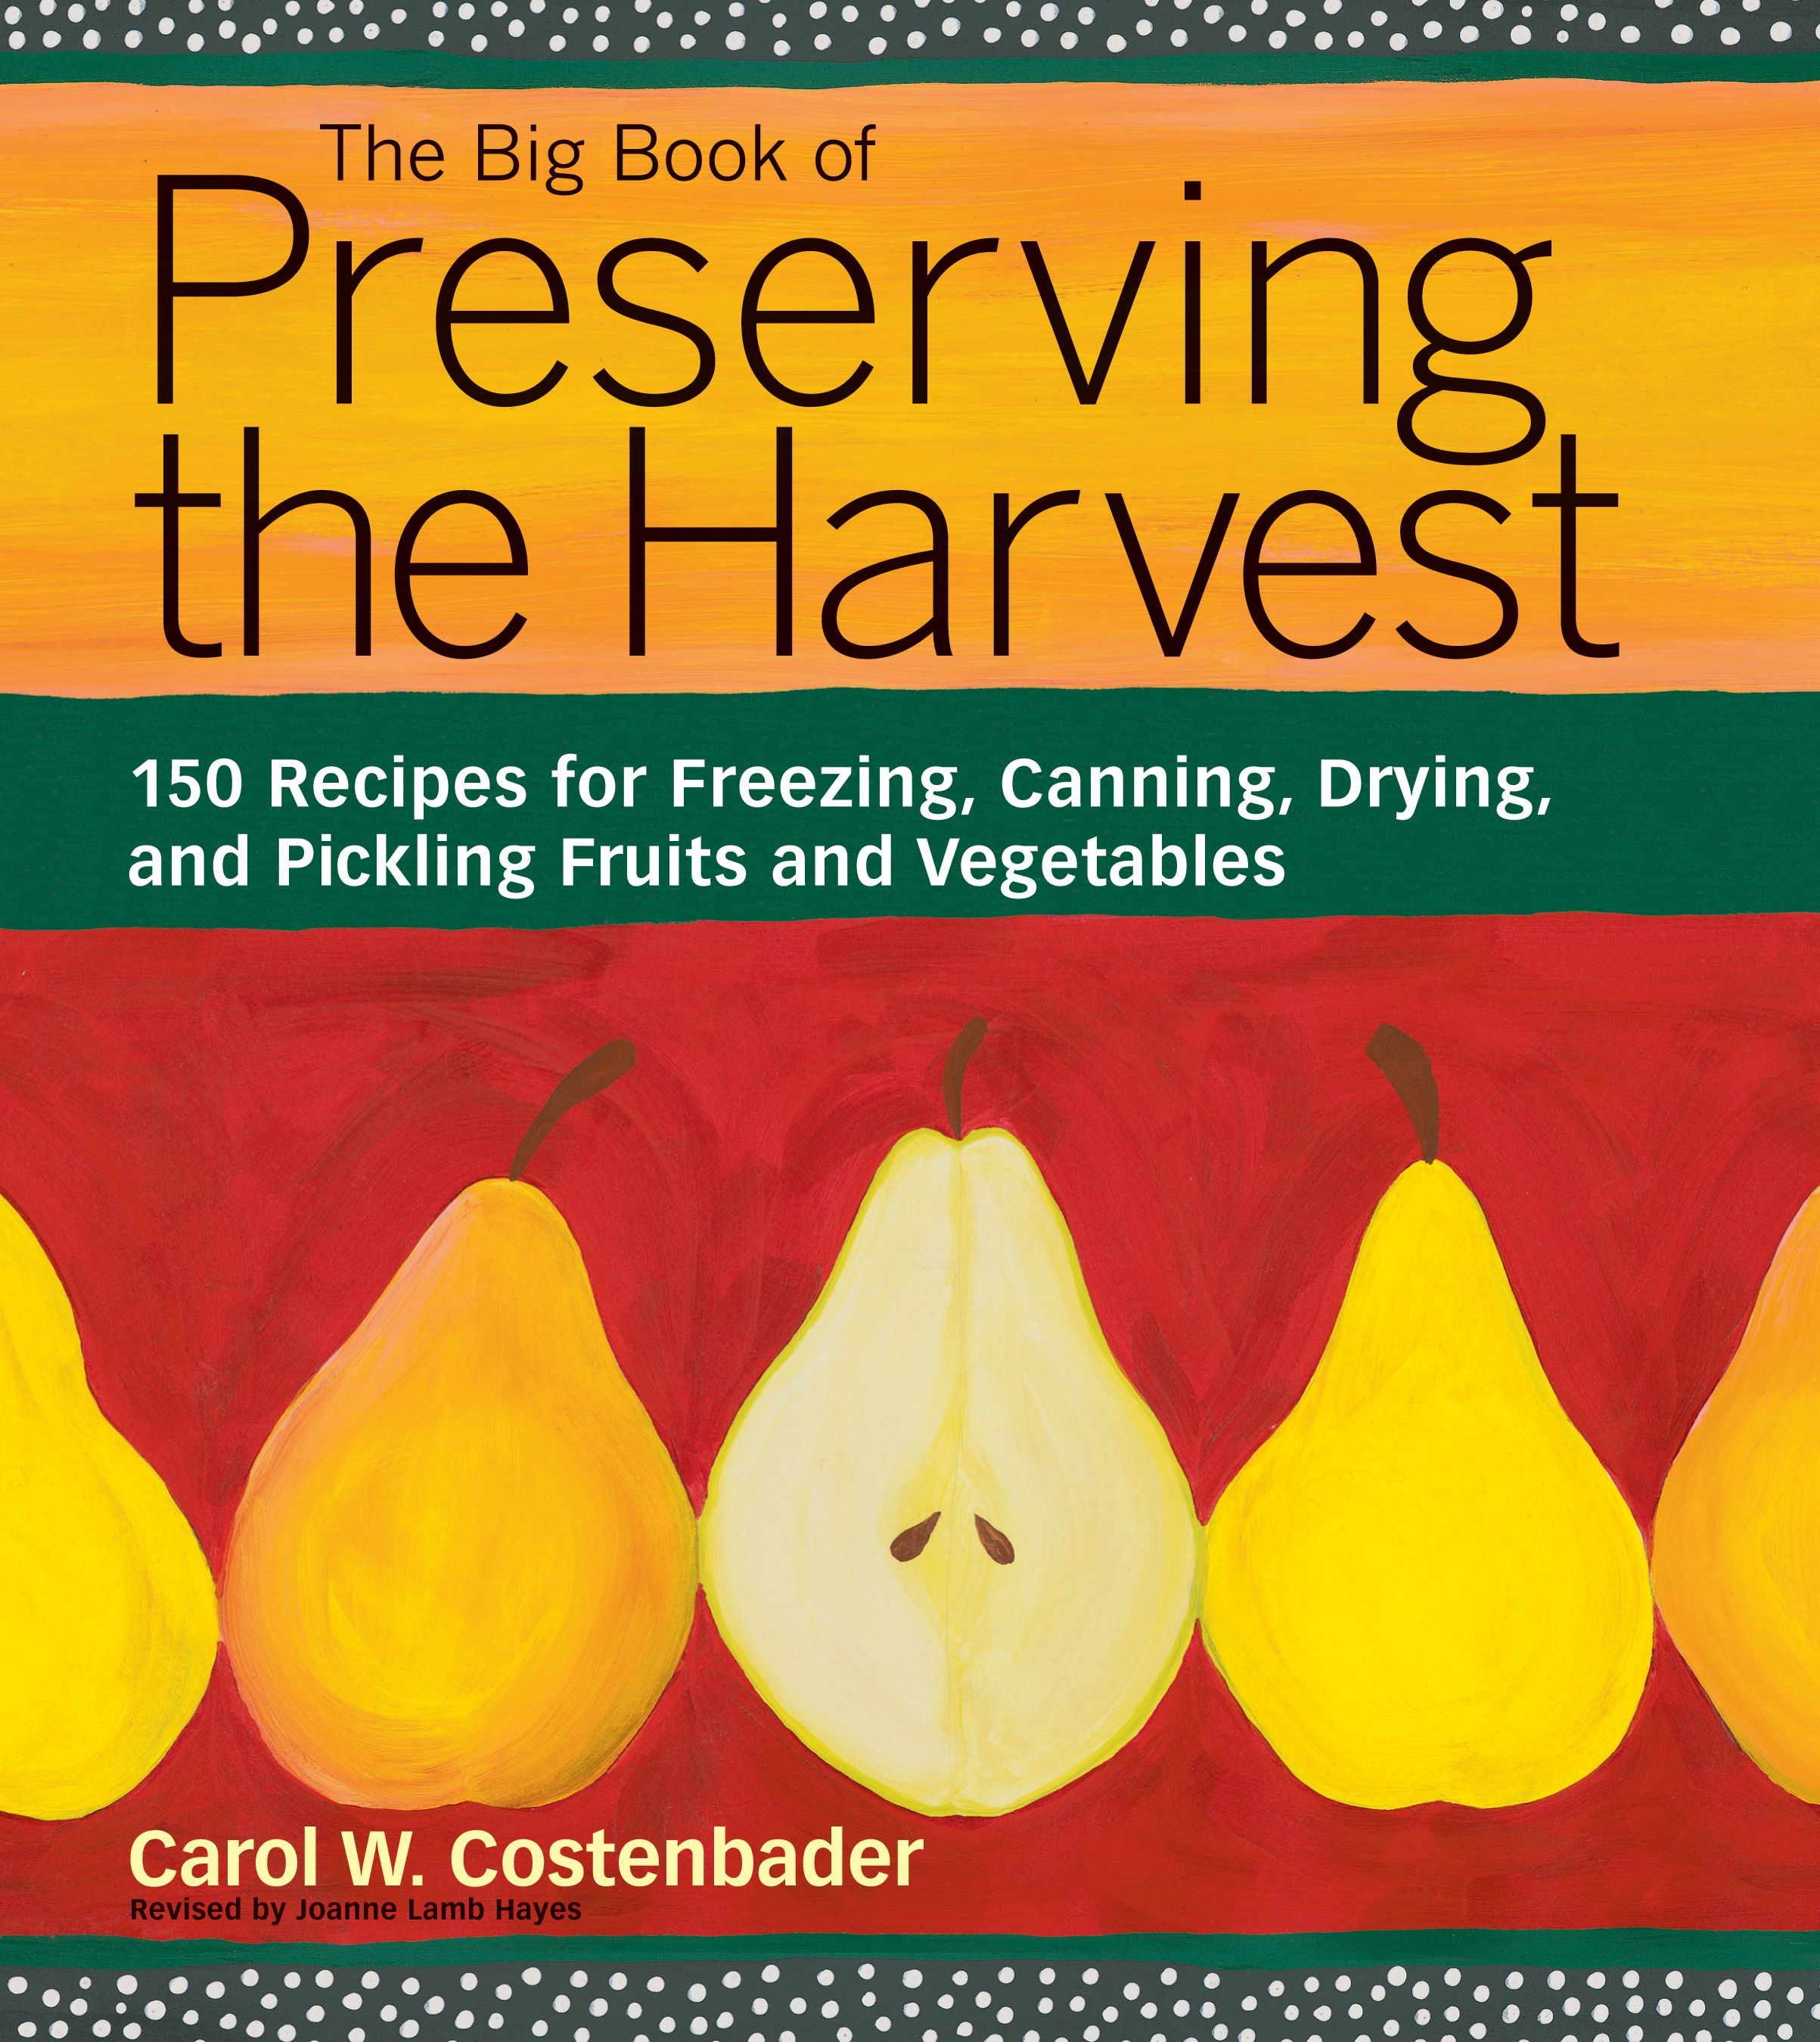 The Big Book of Preserving the Harvest : 150 Recipes for Freezing, Canning, Drying and Pickling Fruits and Vegetables